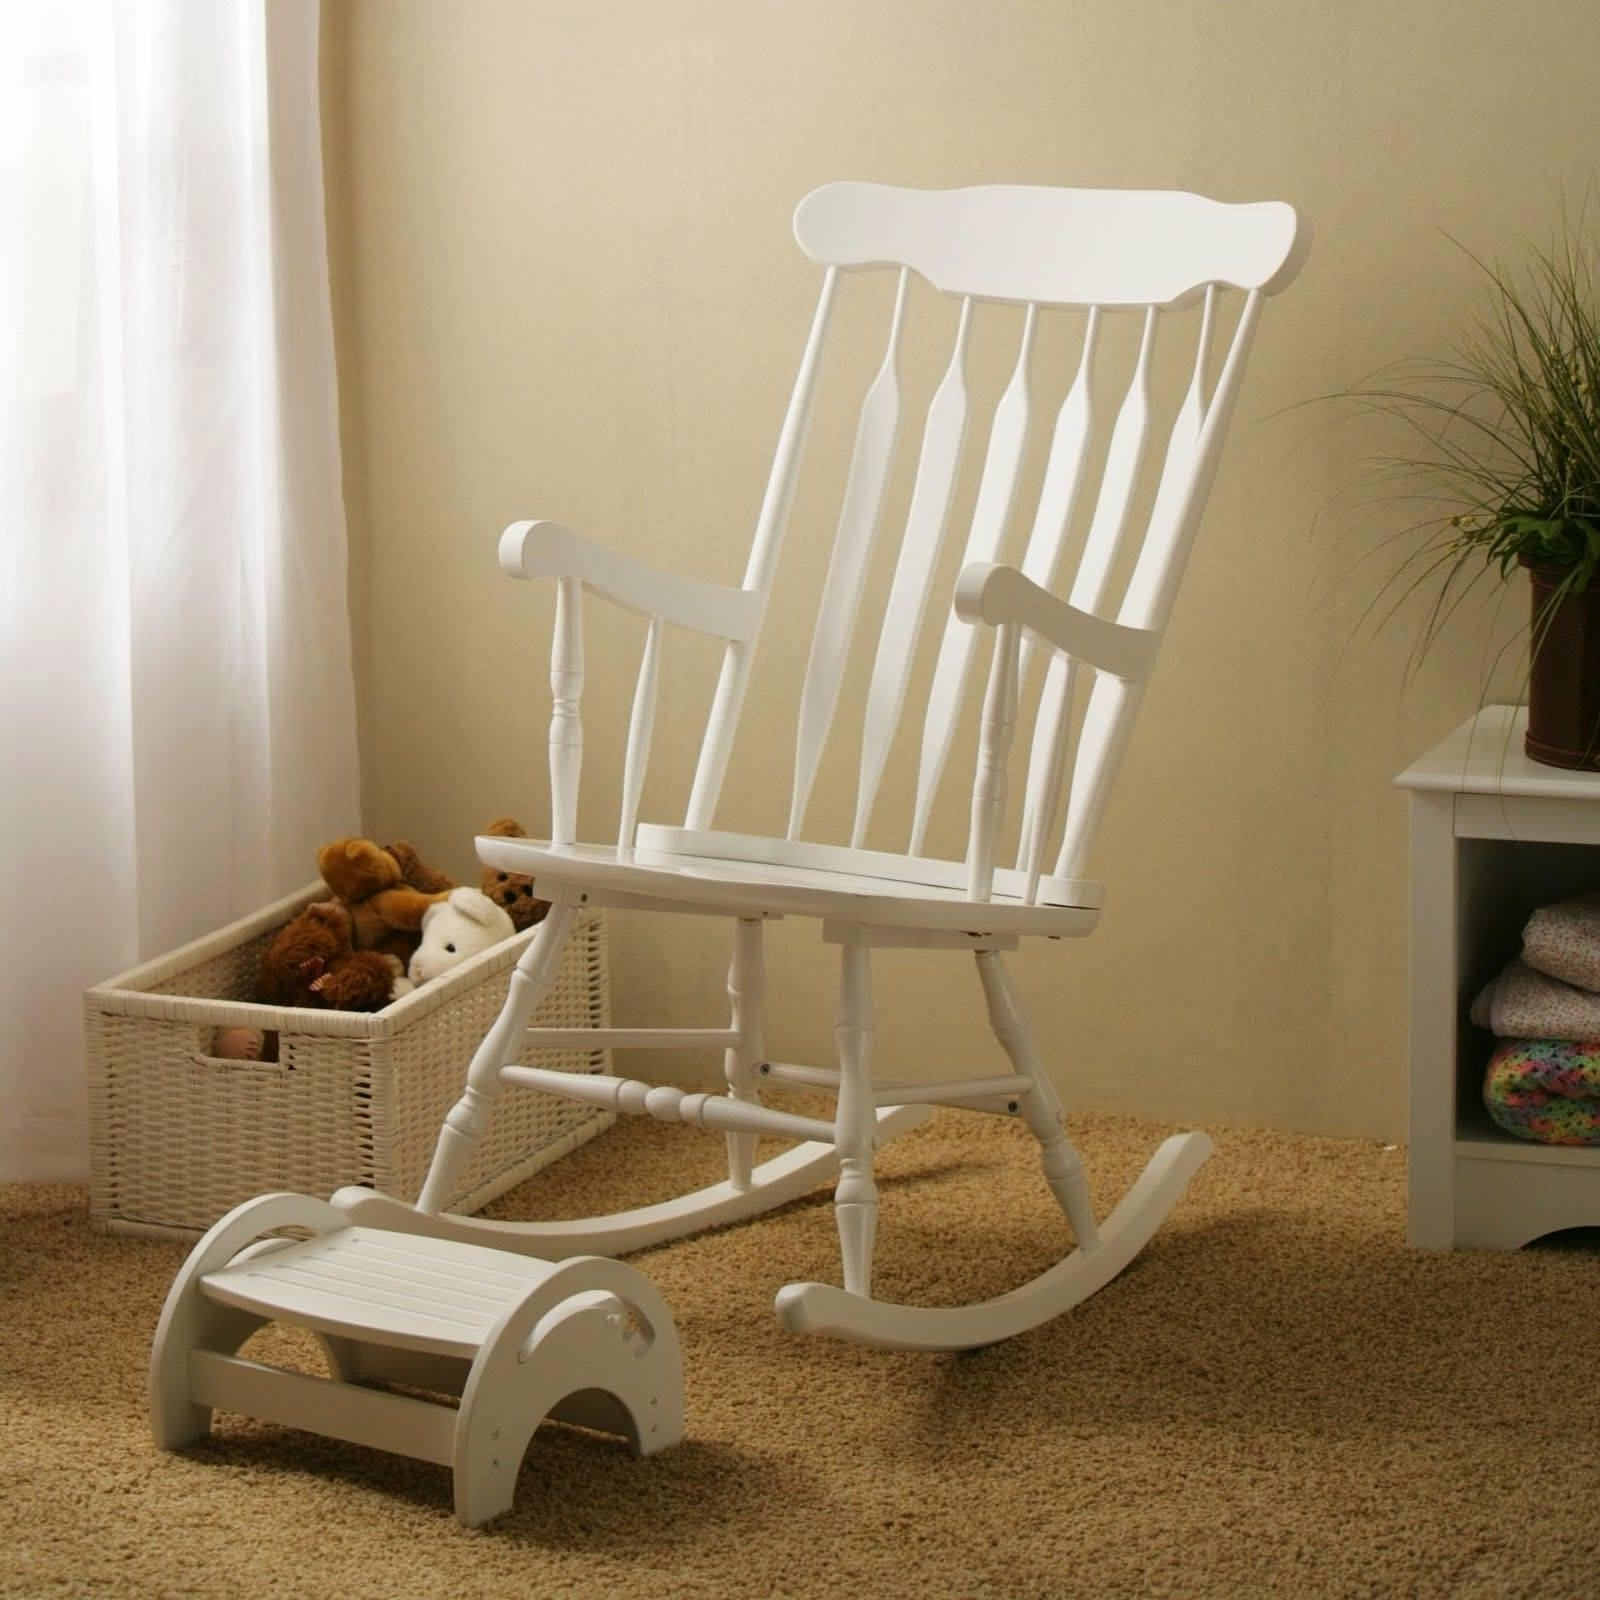 Most Popular Black Nursery Rocking Chair – Noakijewelry In Rocking Chairs With Footstool (View 10 of 15)